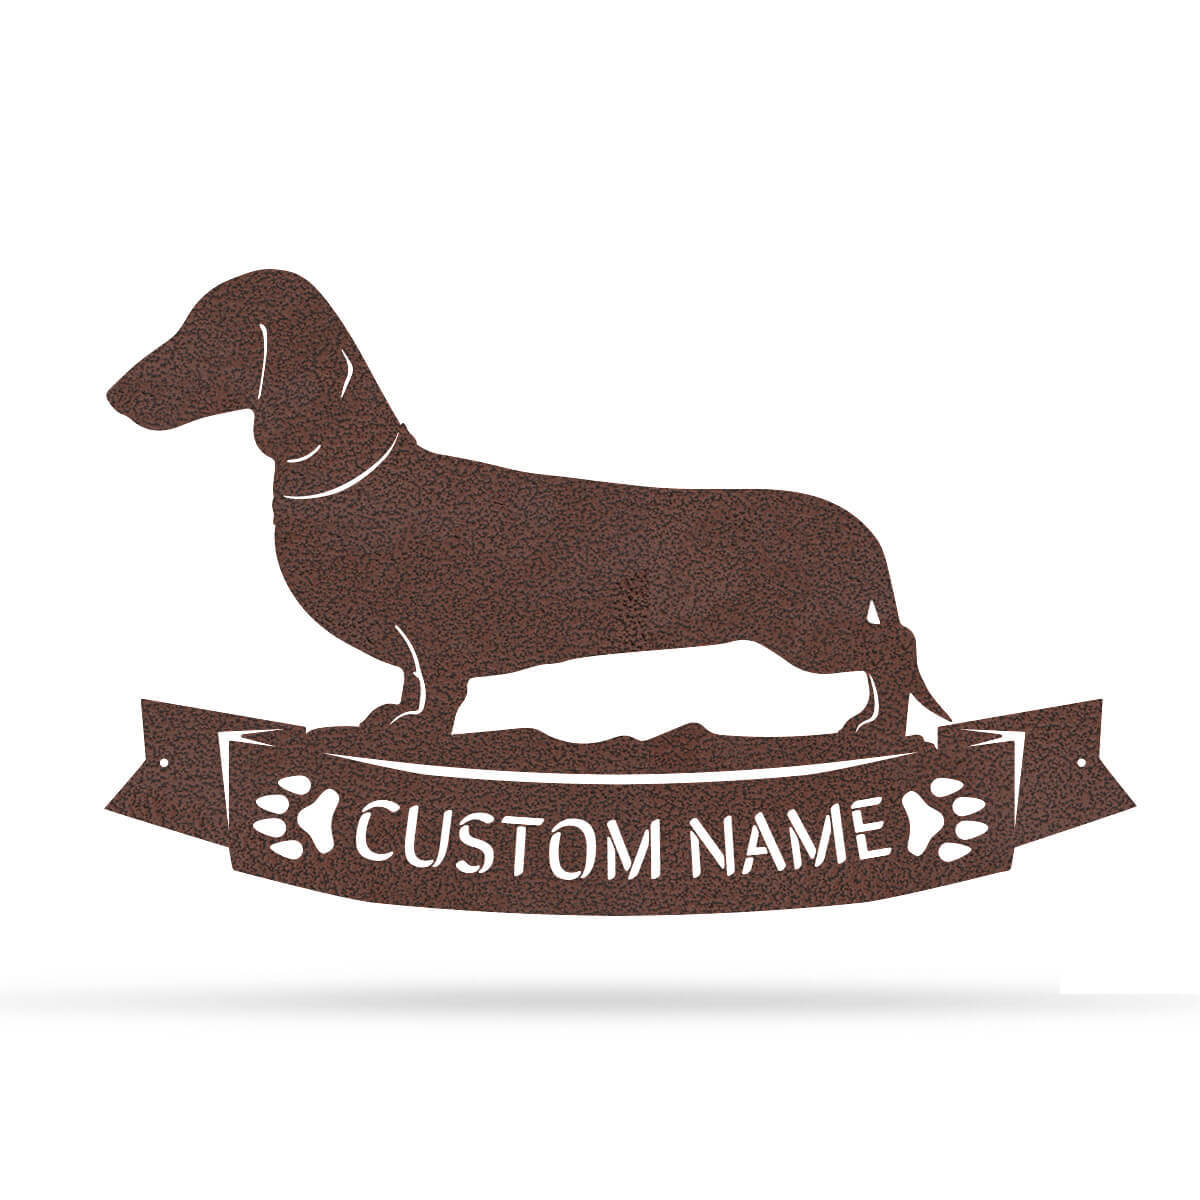 "The Dachshund Monogram 12.5""x20"" / Penny Vein - RealSteel Center"